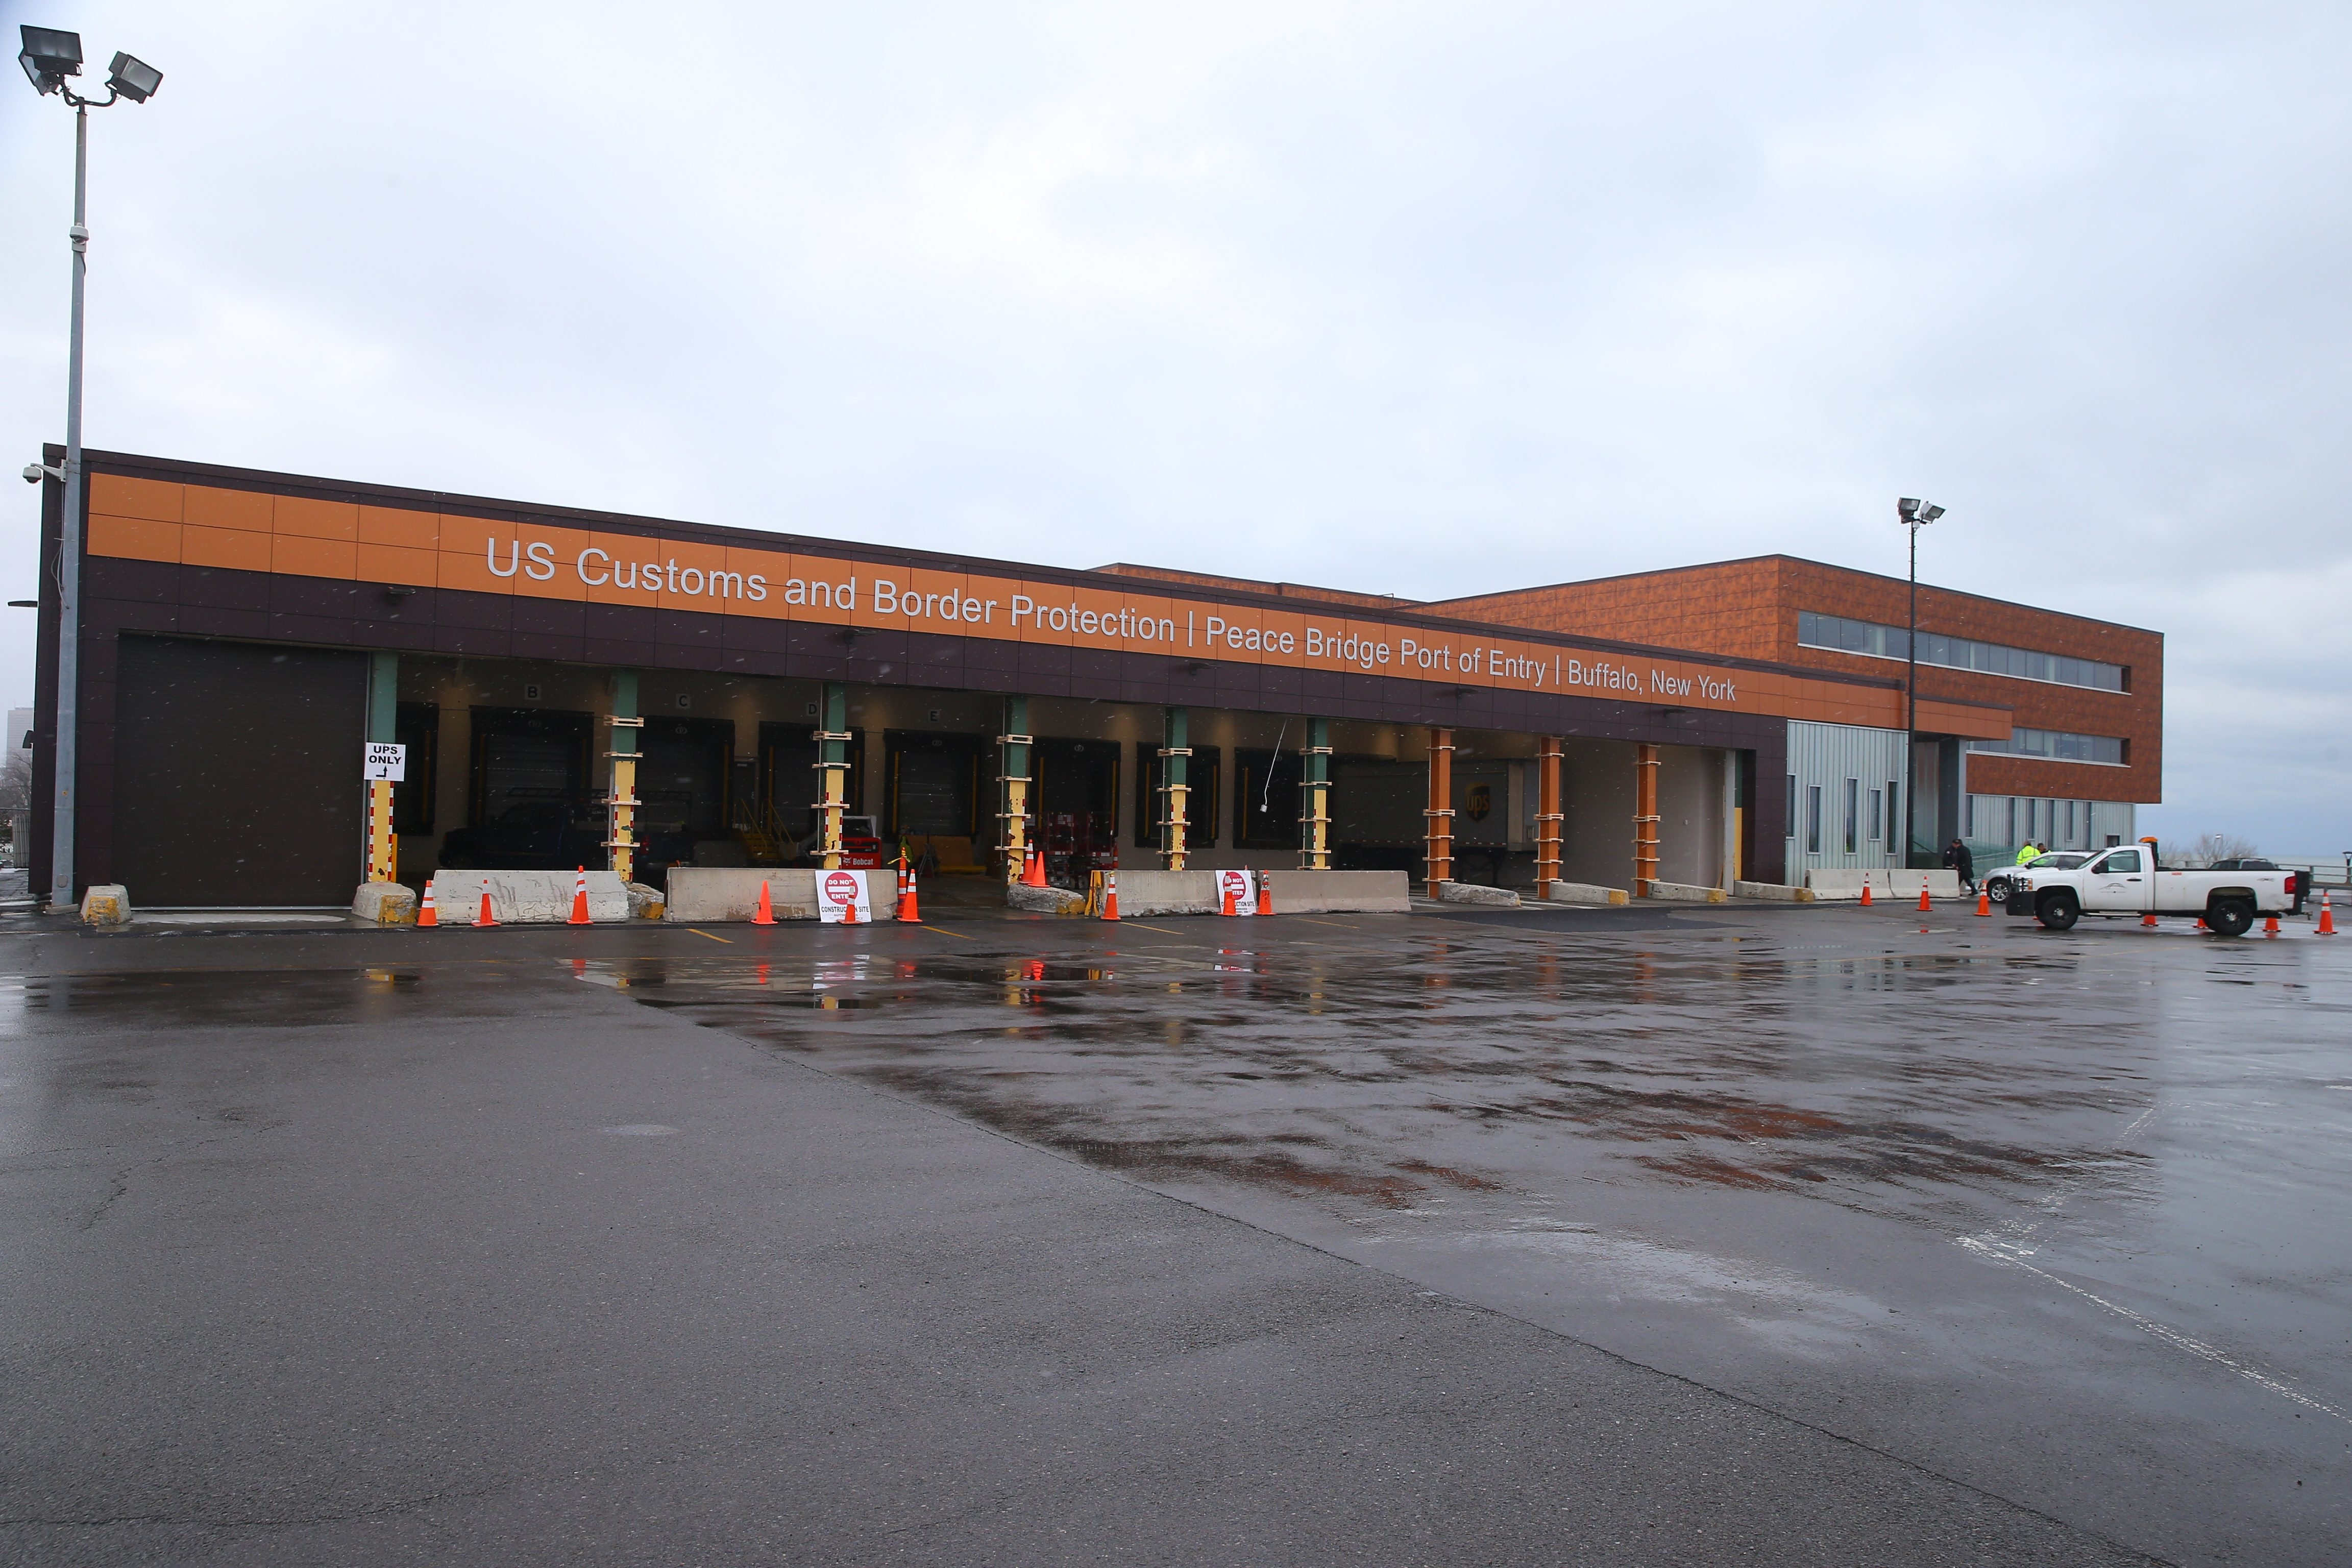 The $24 million renovation and expansion project at the U.S. Customs facility in Buffalo included the addition of truck inspection bays, top, and new conference rooms and work stations for Customs officials, above left and right.